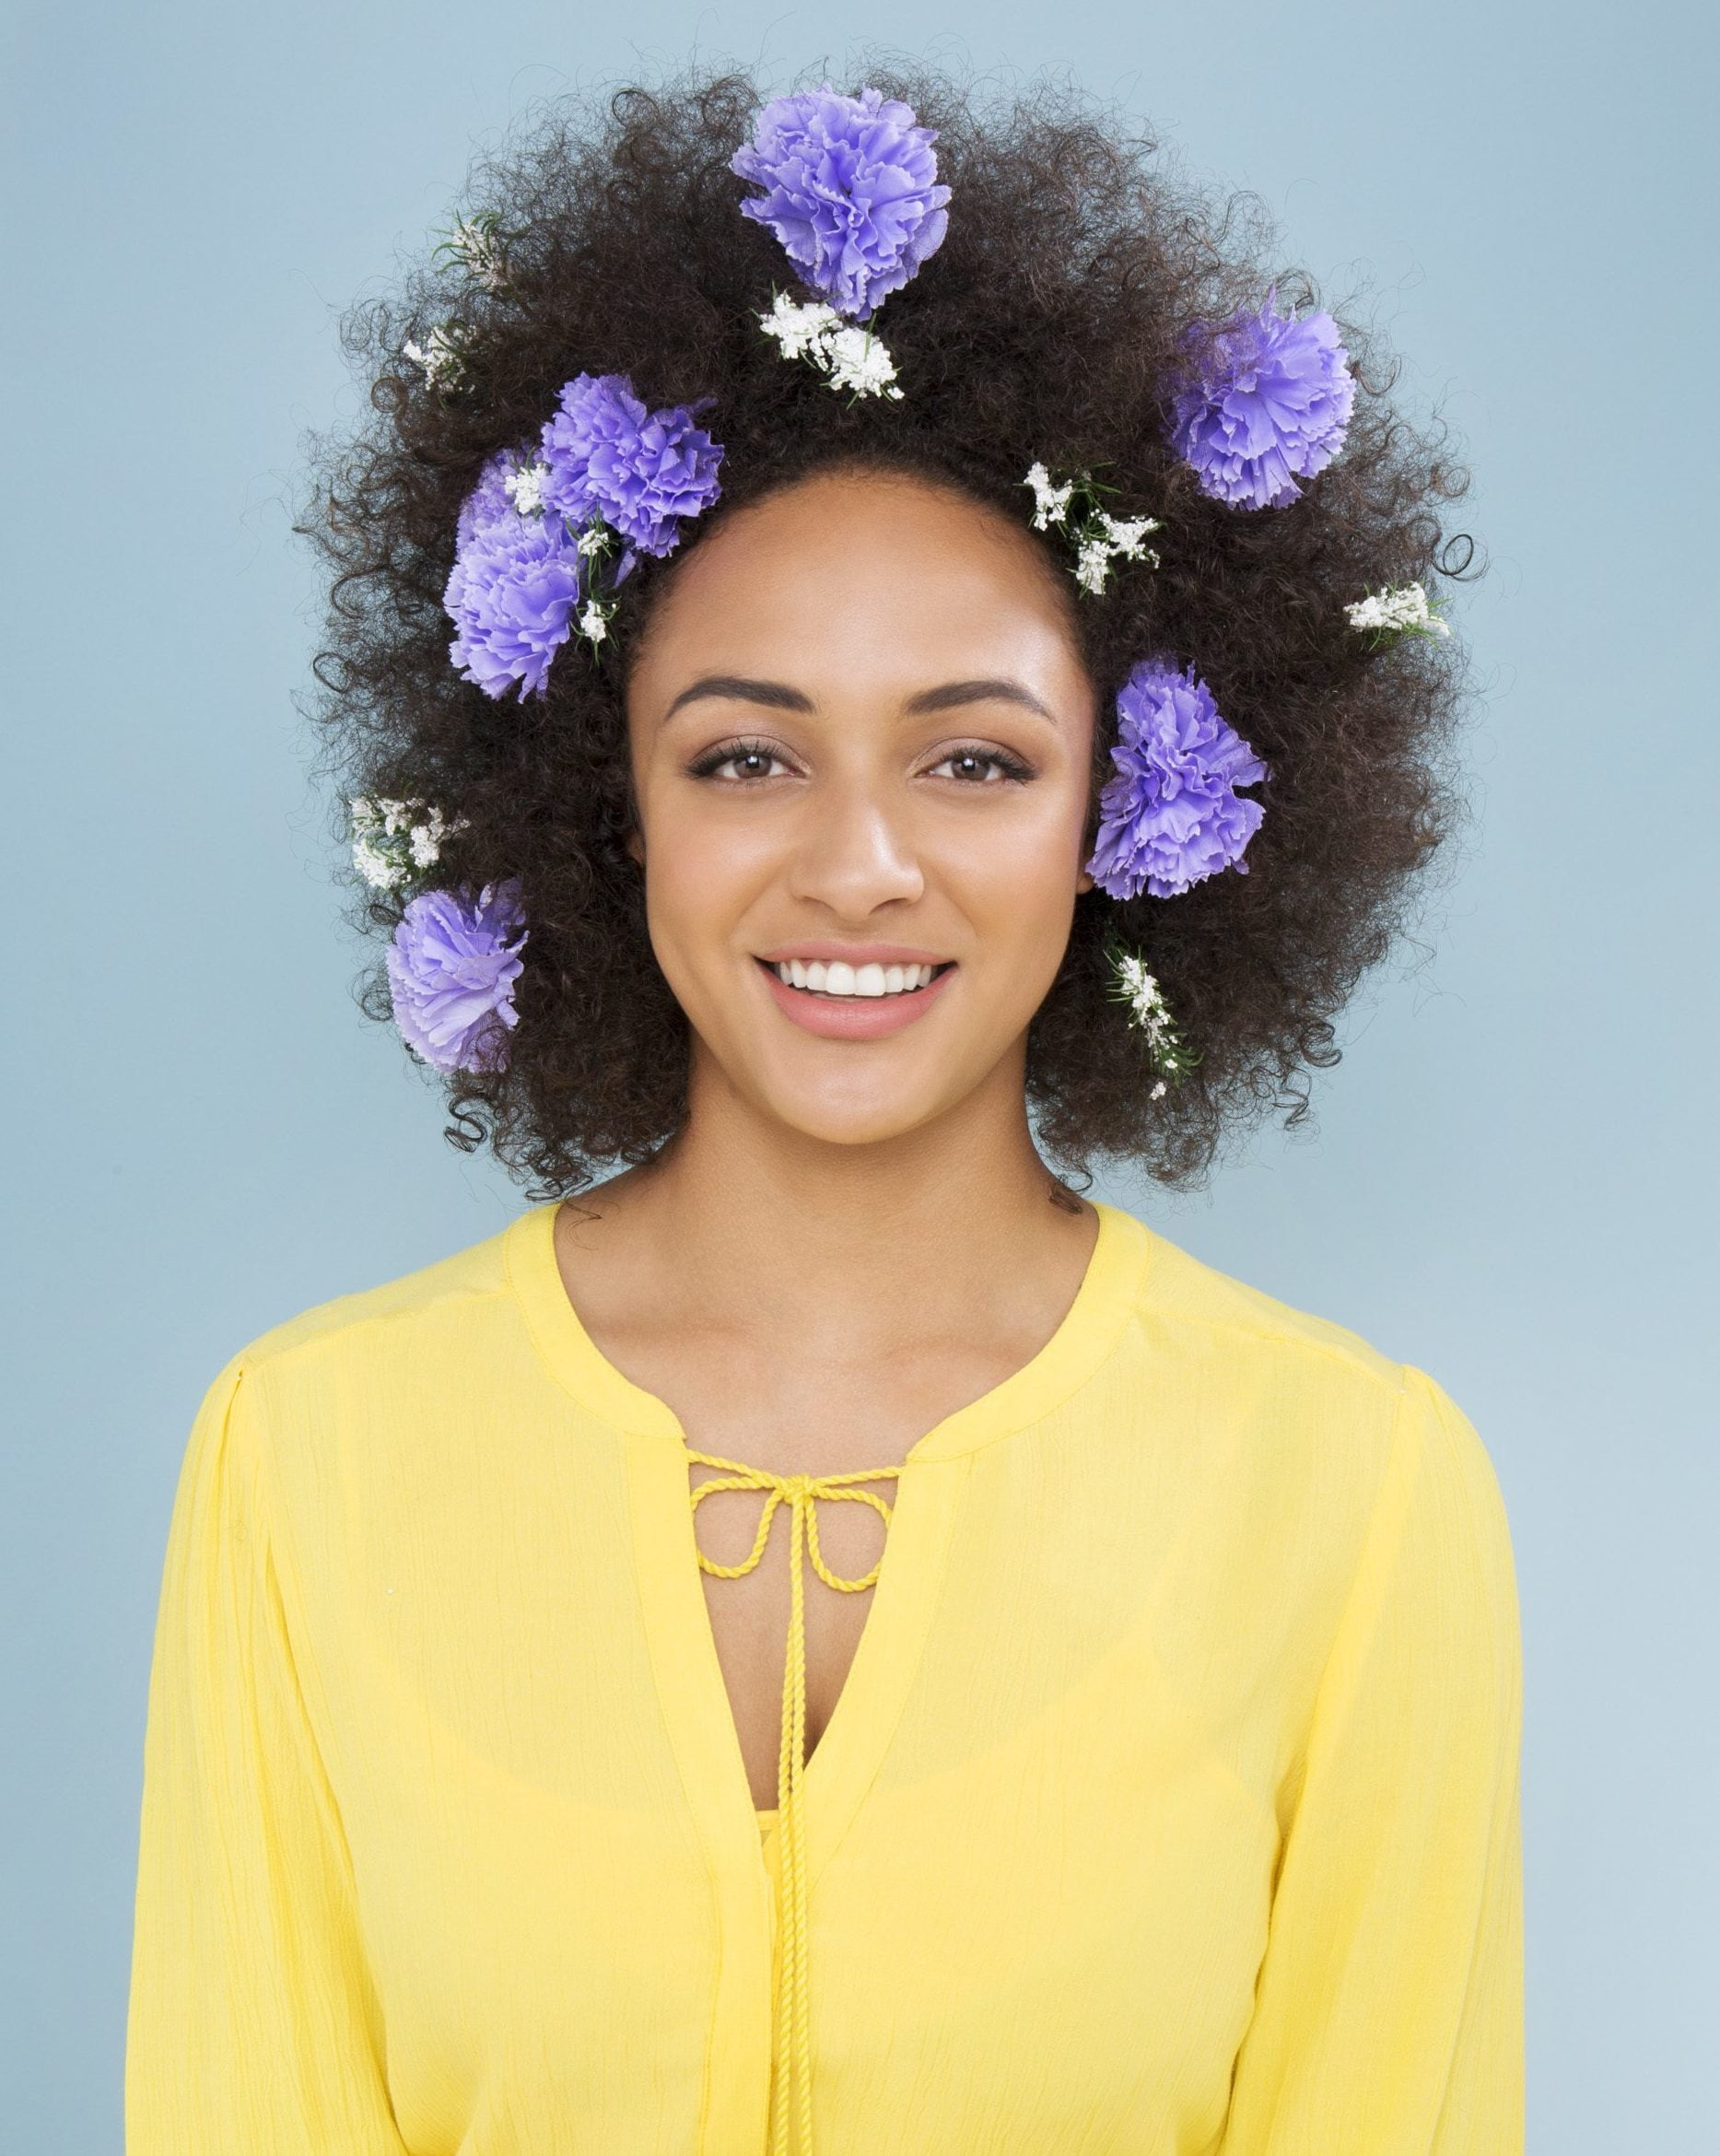 woman wearing a yellow blouse with lilac and white flower hair accessories in her afro